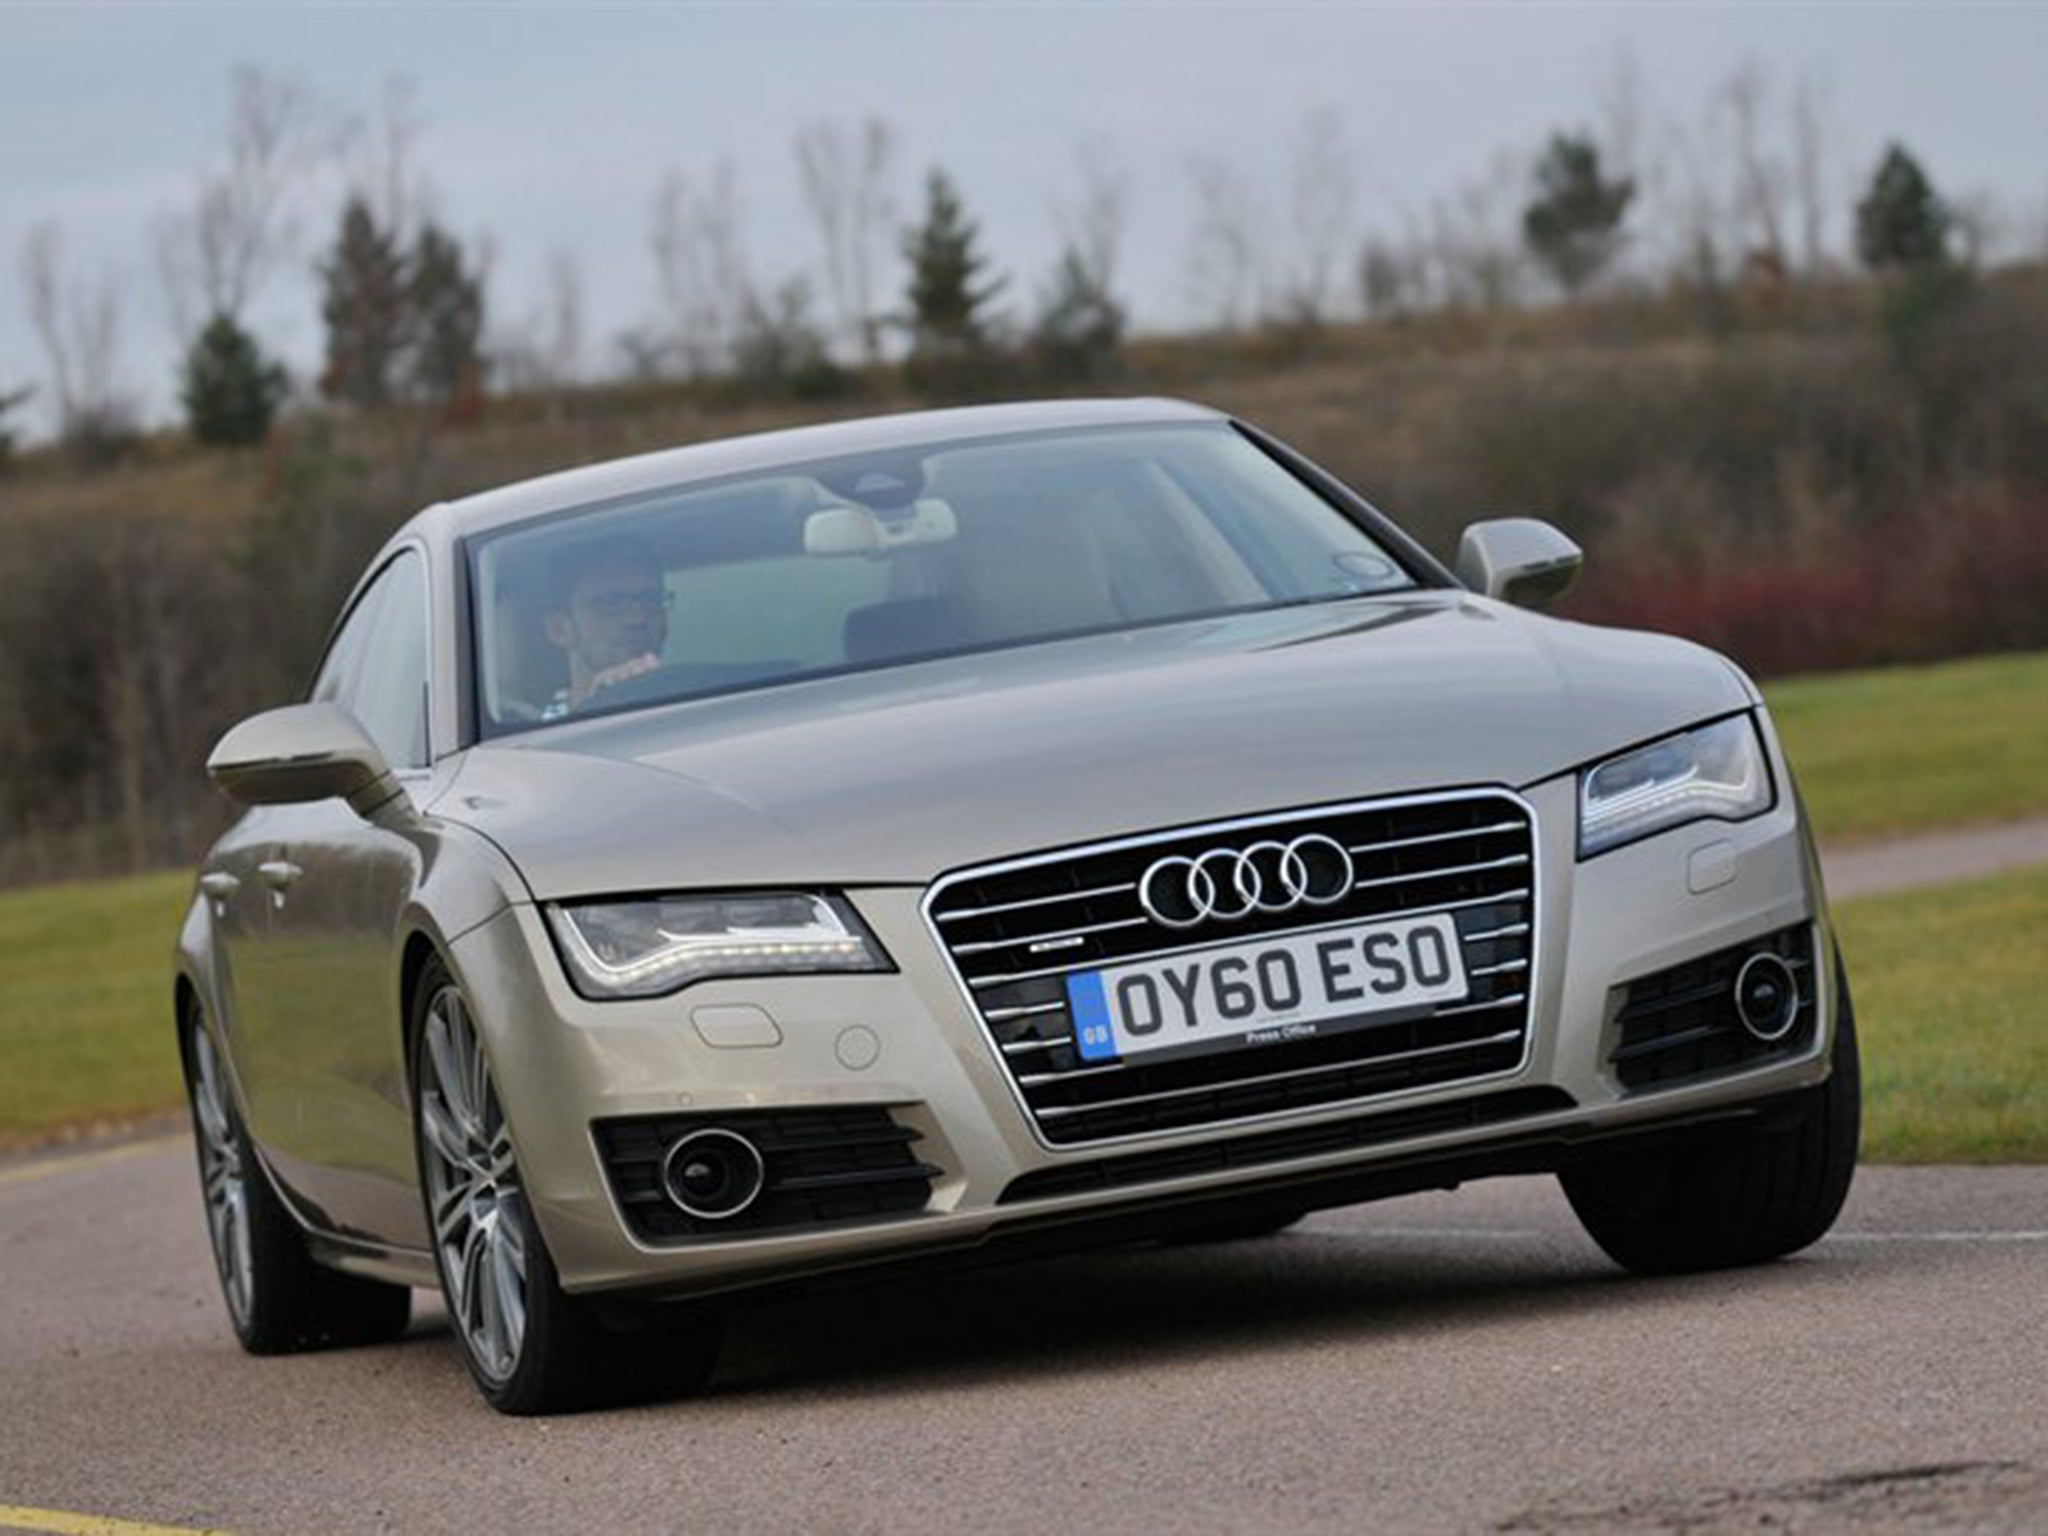 Audi Latest News Breaking Stories And Comment The Independent - Where are audis made